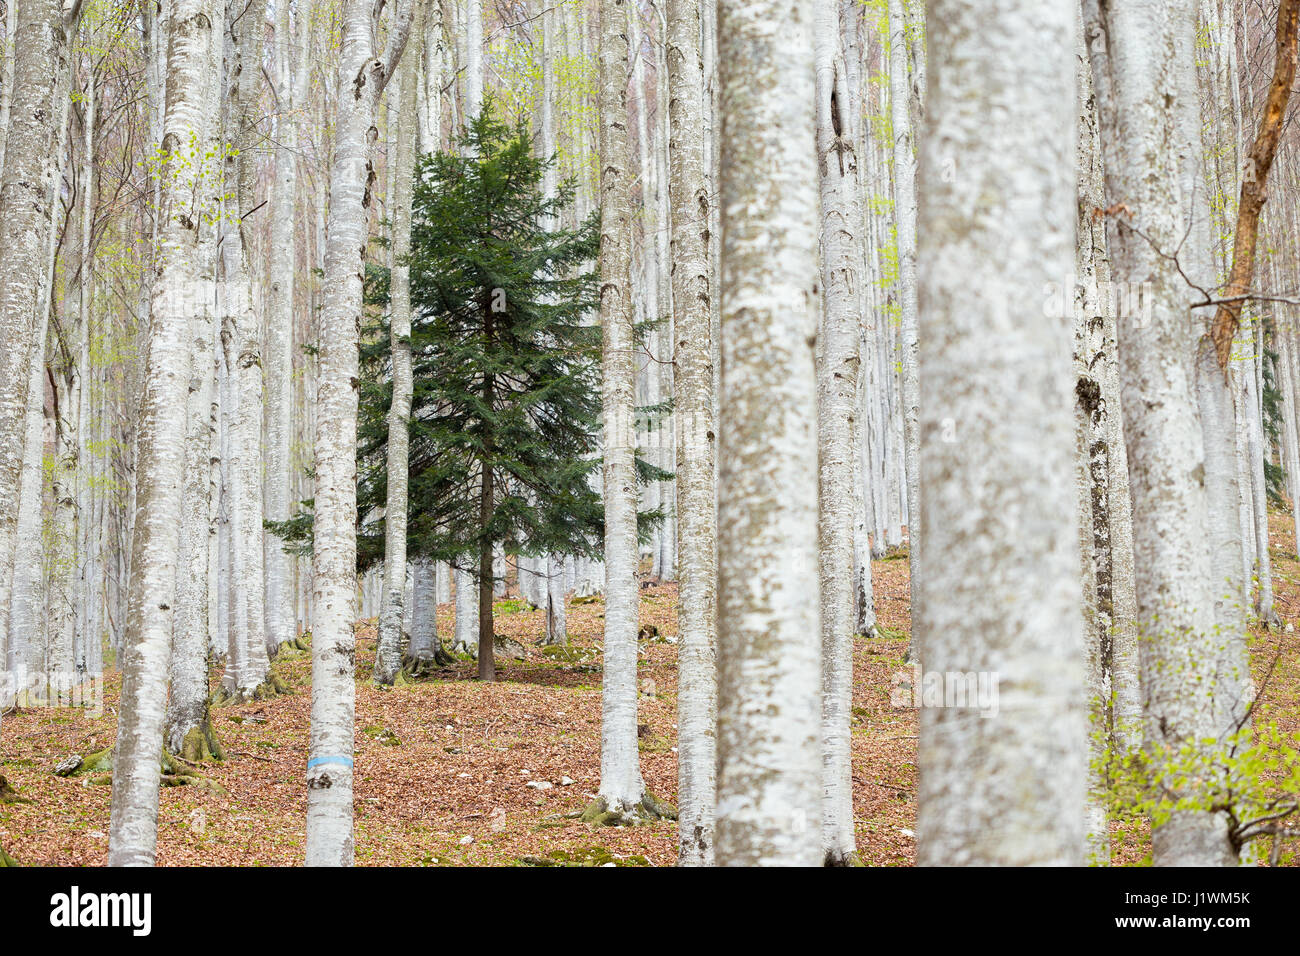 White spruce. Abies alba. Beech forest, Fagus sylvatica. Cansiglio. - Stock Image